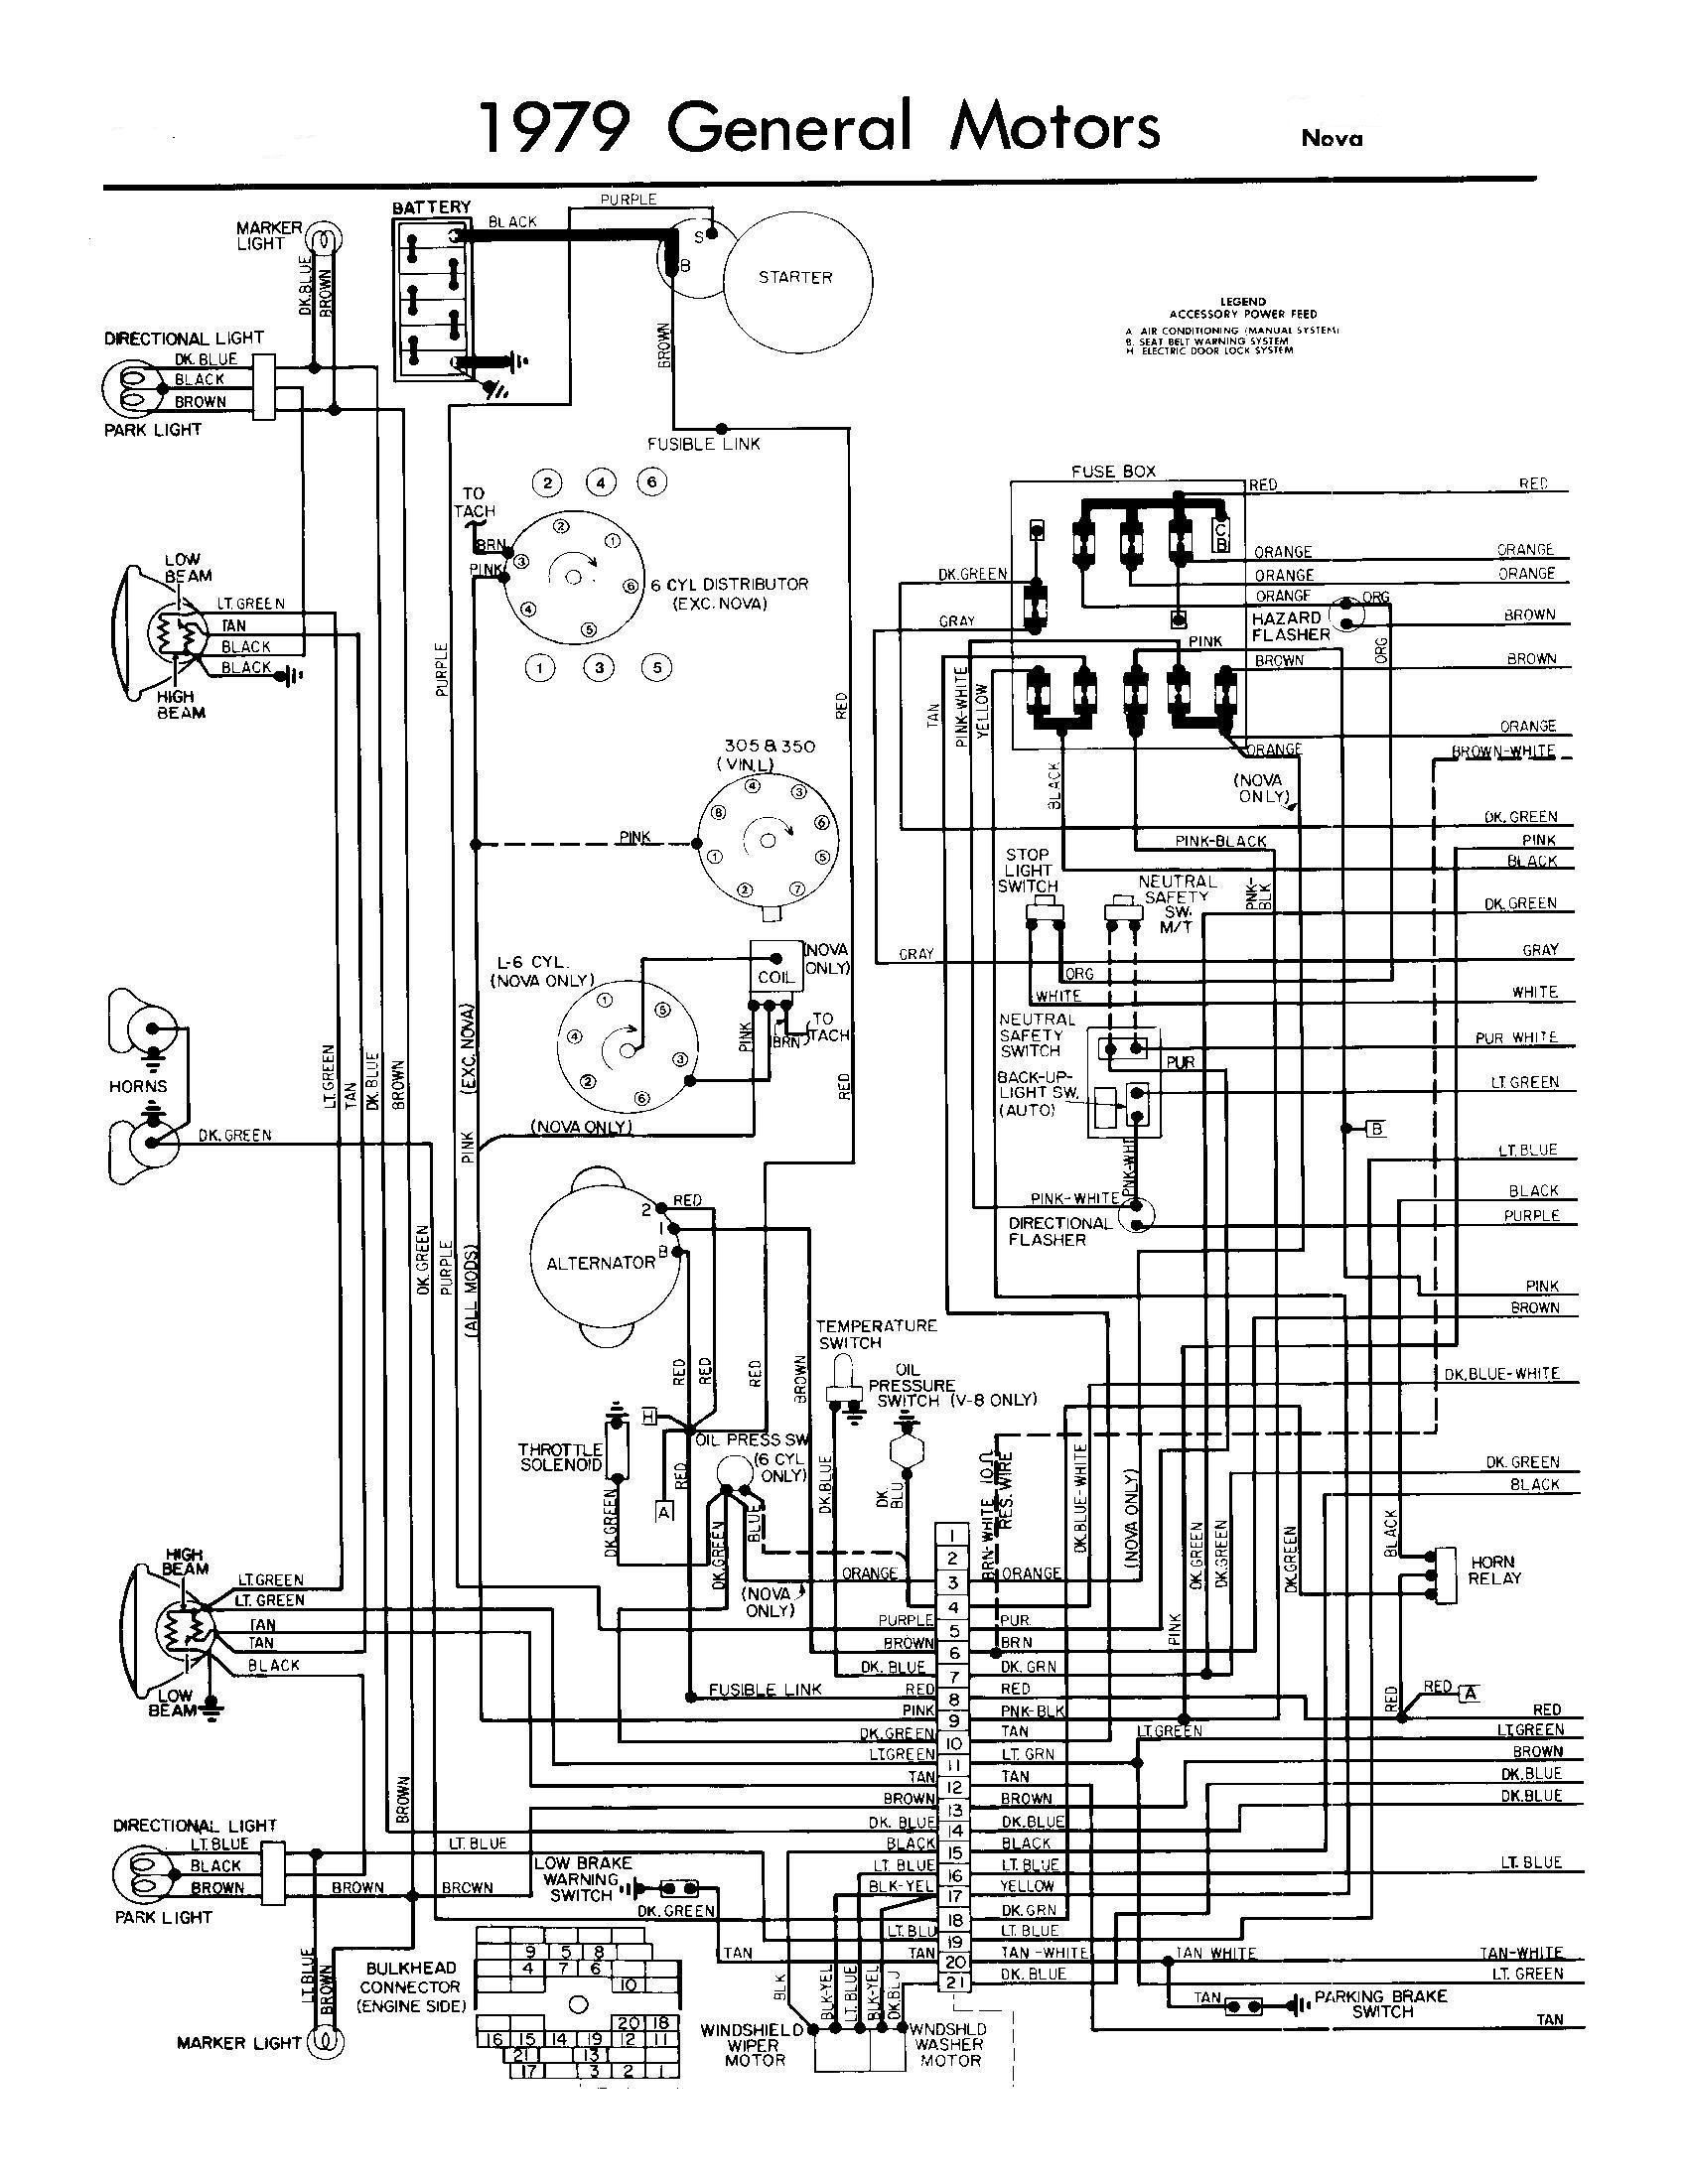 1967 chevy c10 fuse box diagram wiring schematic example rh huntervalleyhotels co 1967 Chevy C10 Radio 1965 C10 Fuse Box Diagram